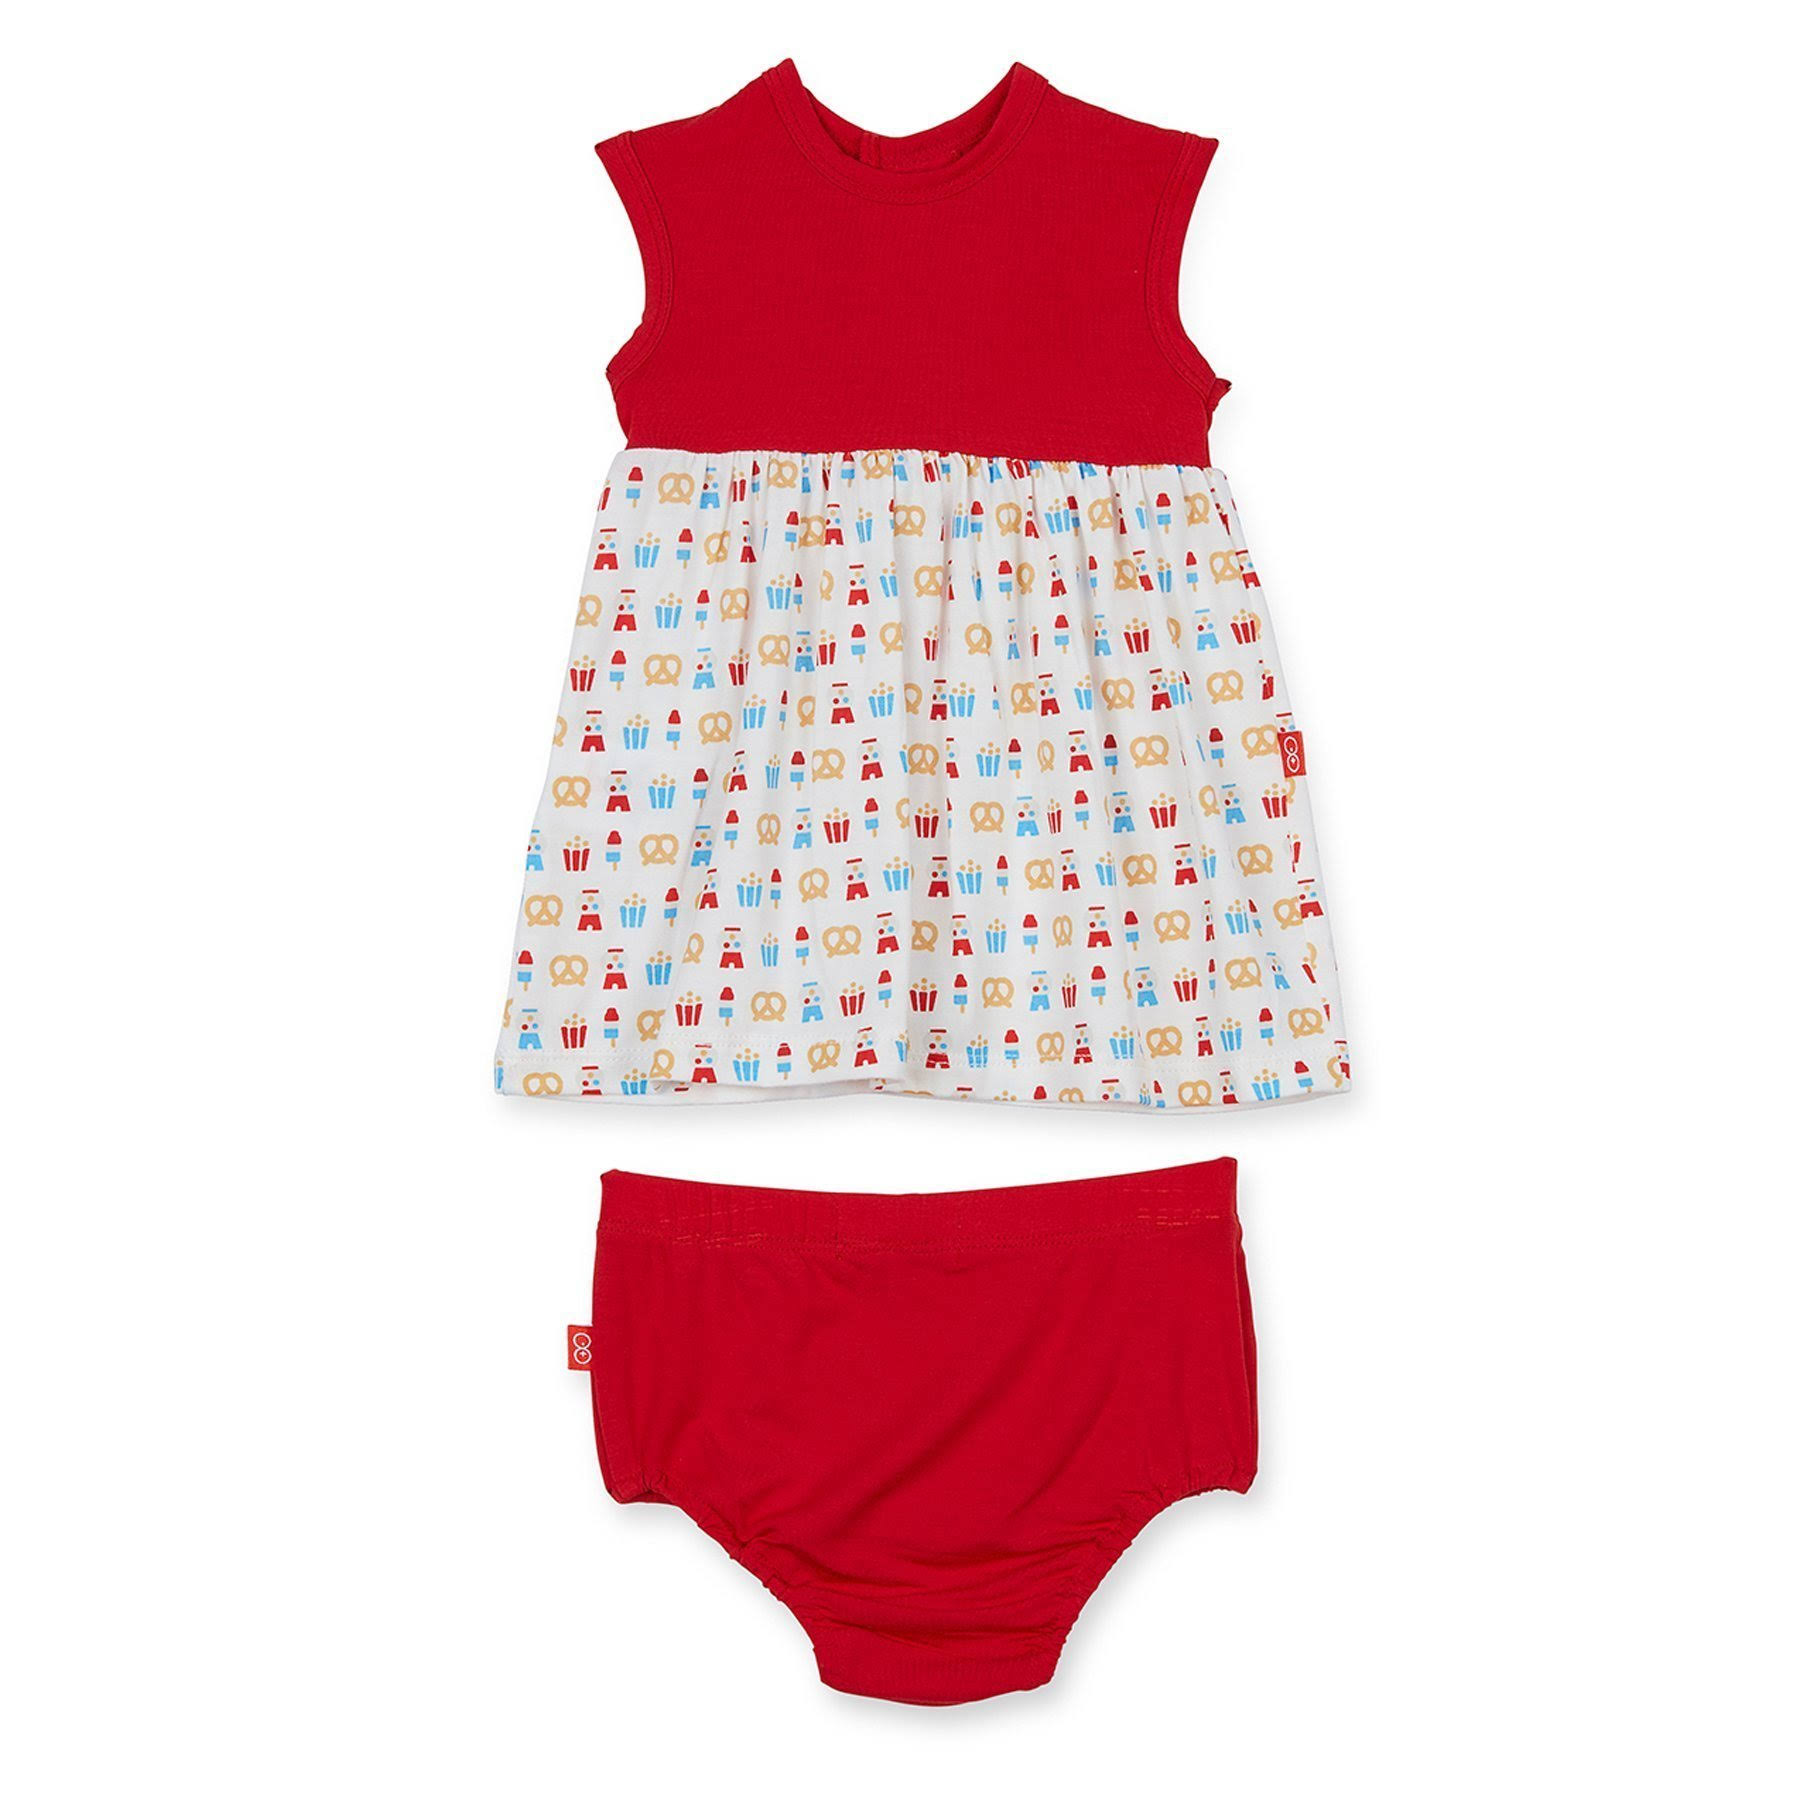 Magnetic Me Summer Fare Modal Magnetic Dress/Diaper Cover 9-12M